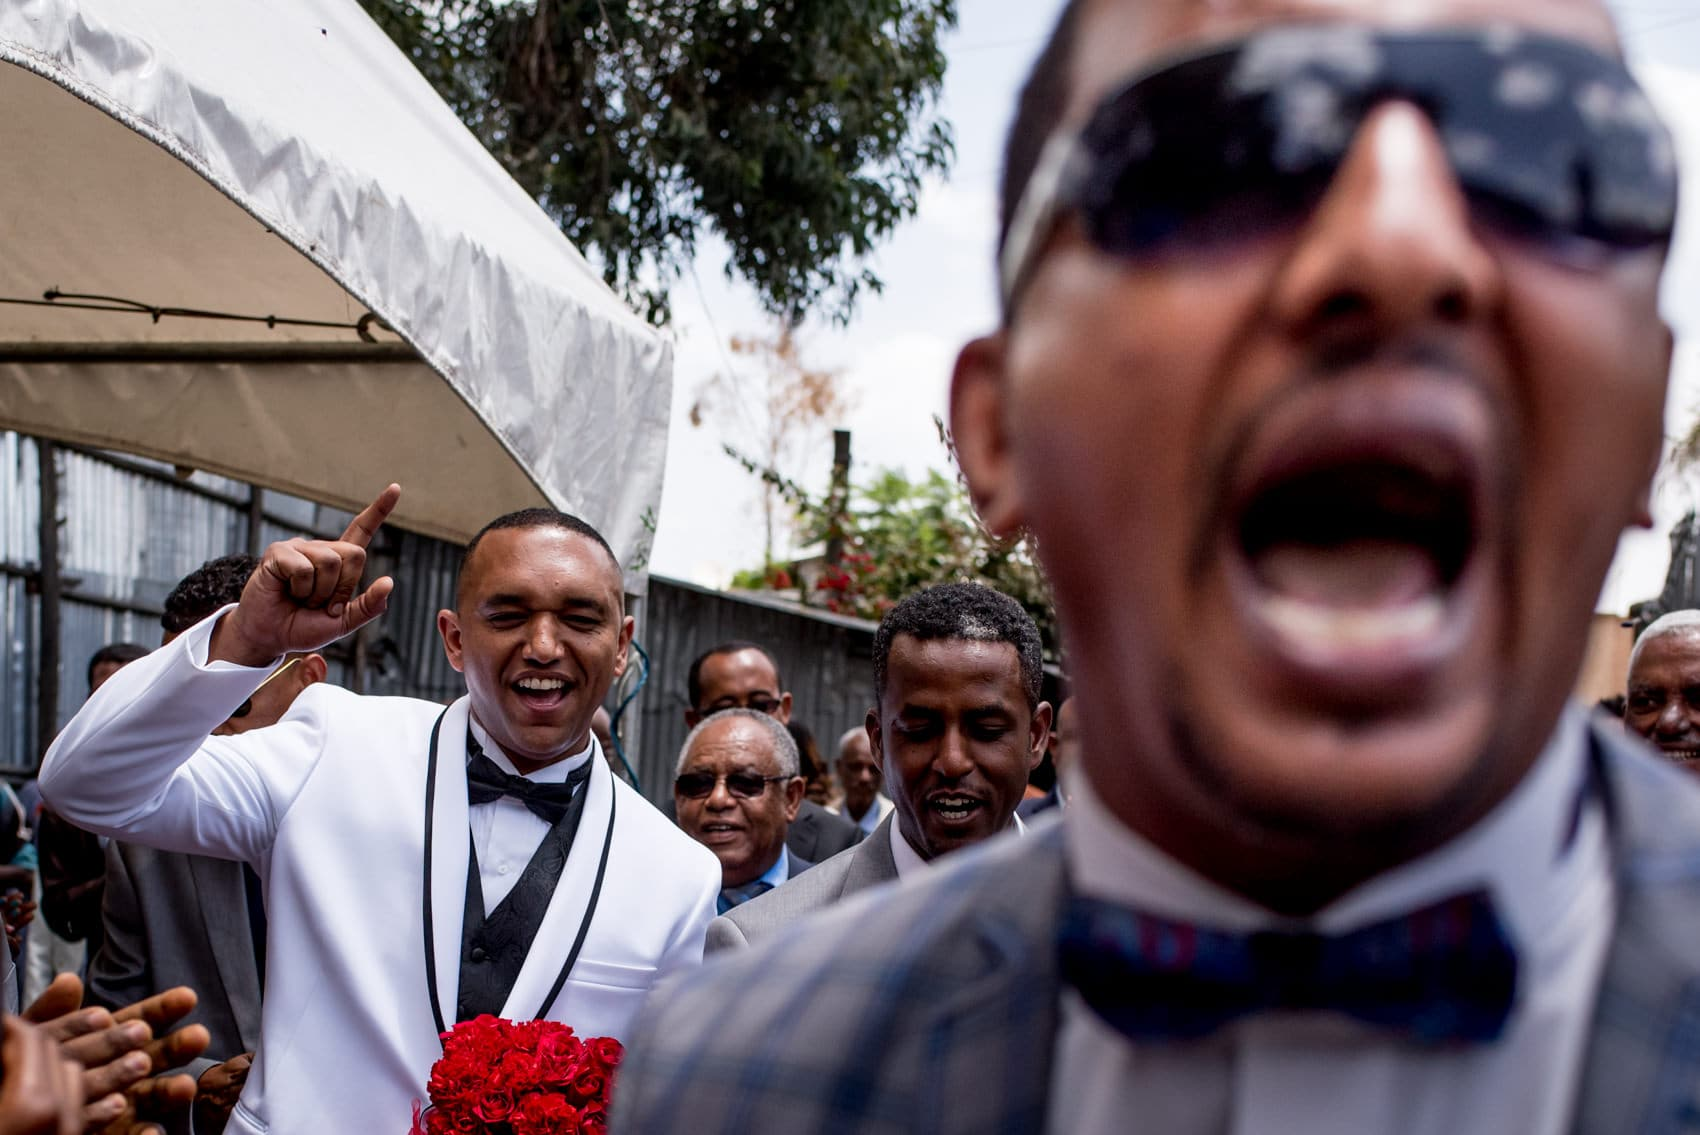 groom wedding celebrations in Ethiopia